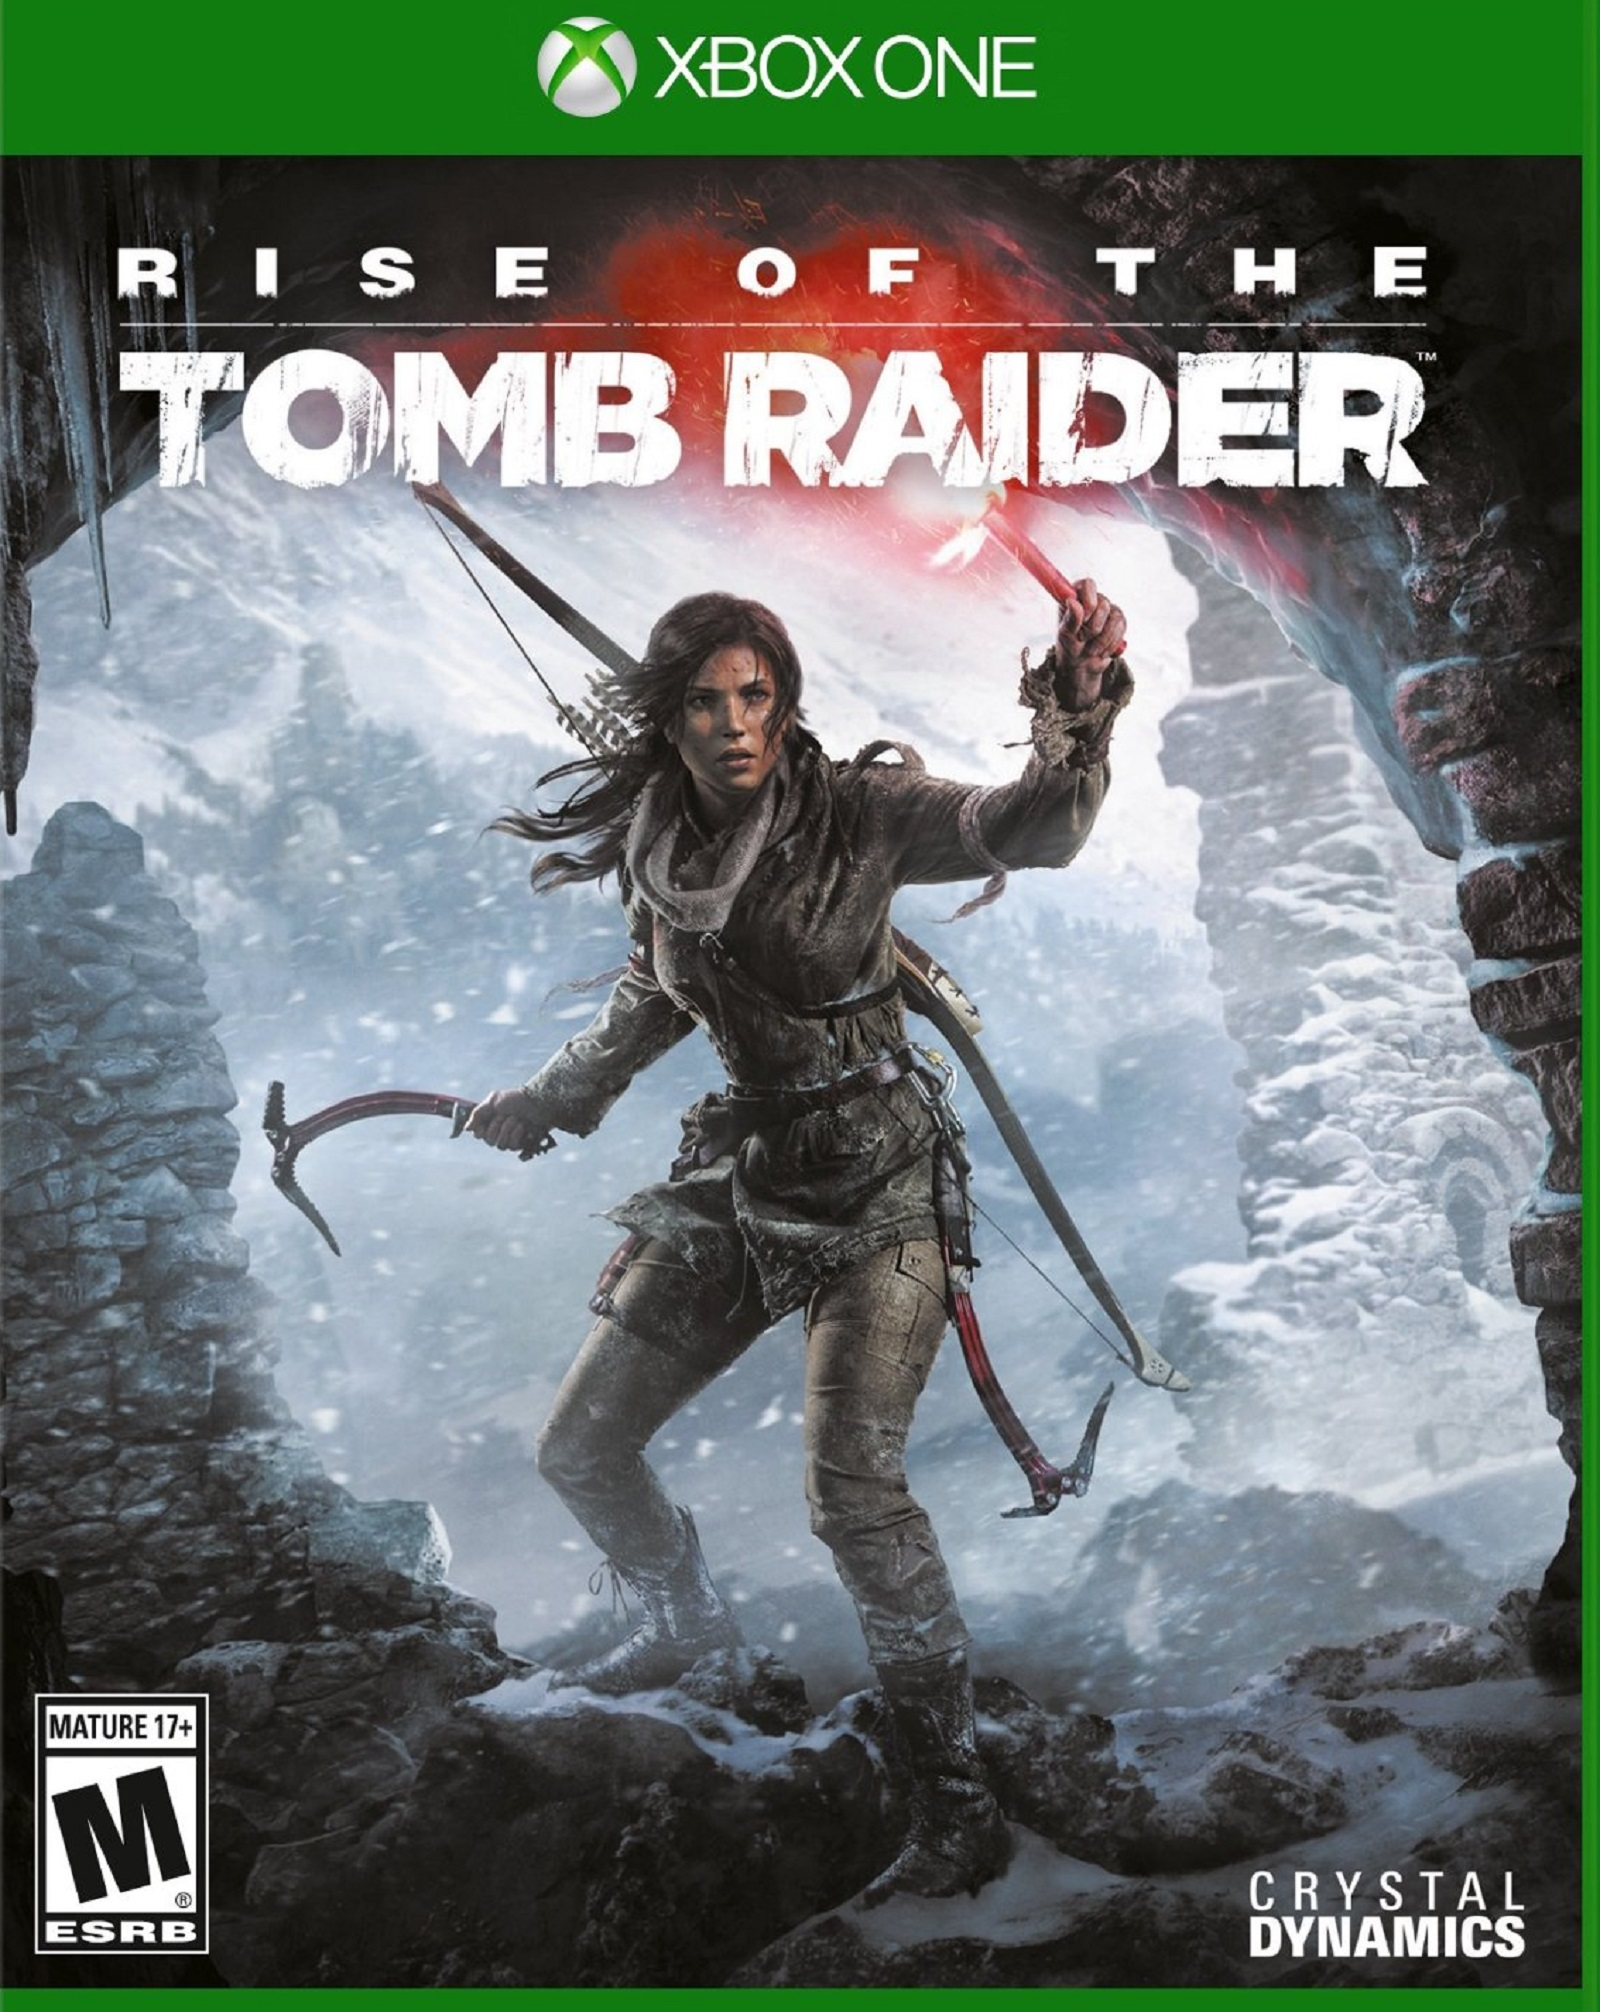 Xbox One Rise of the Tomb Raider USA Box Artwork M for Mature